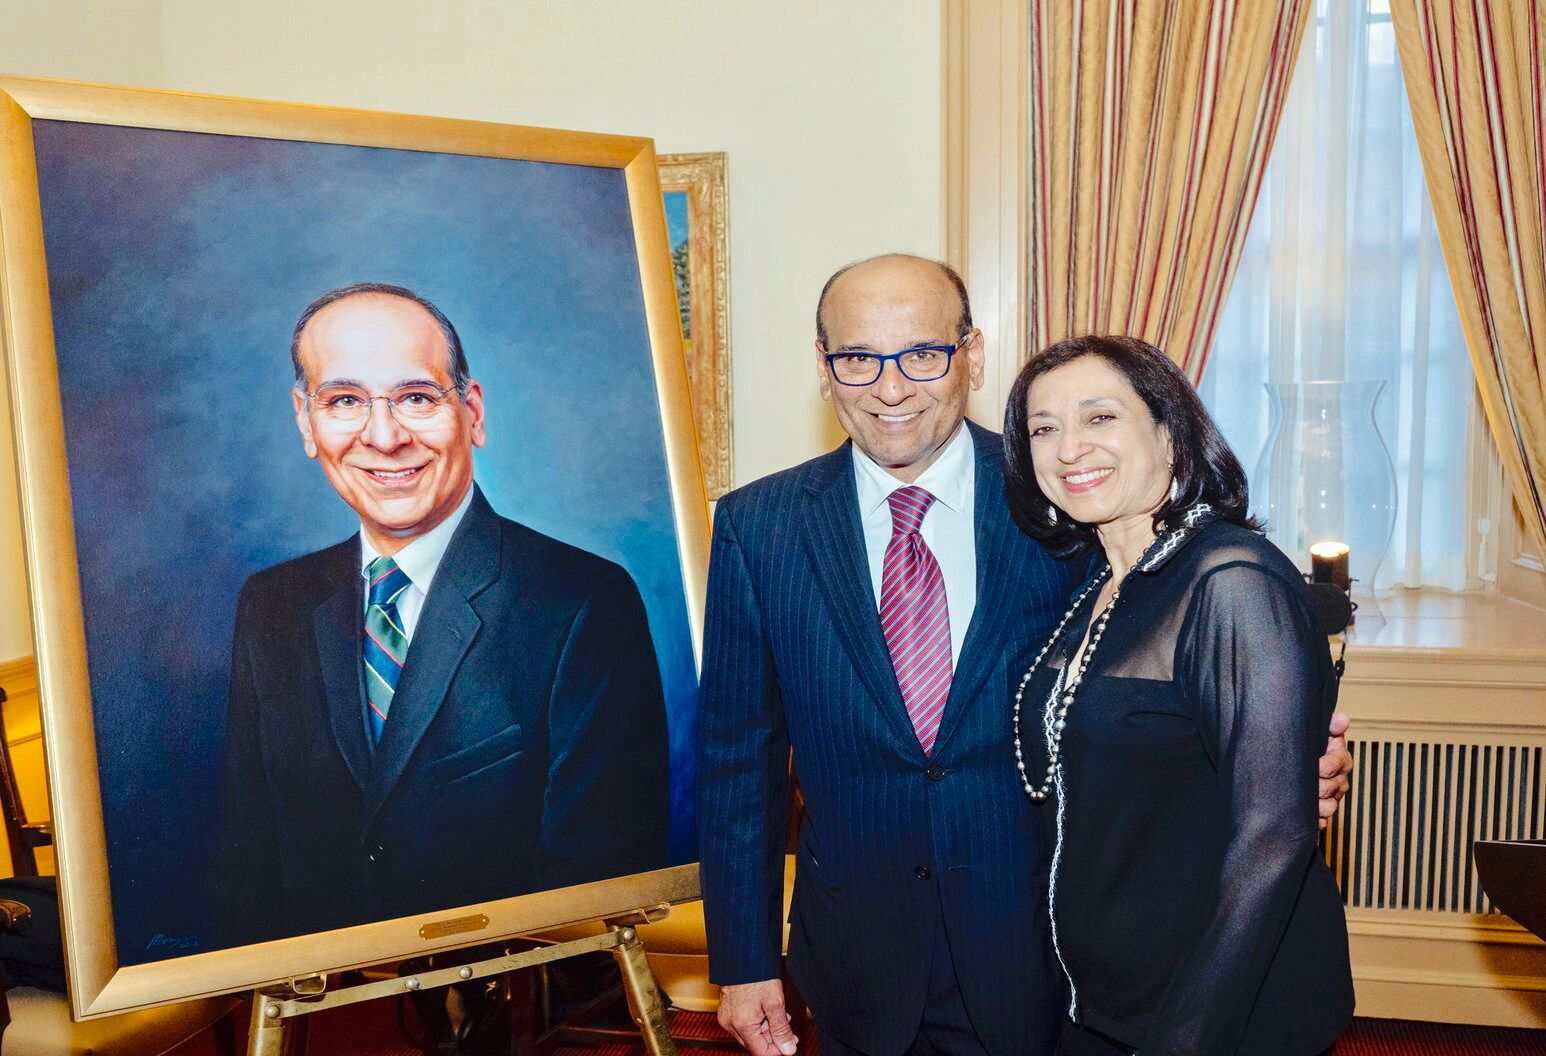 Raj Narayan, MD, and his wife, Tina, stand beside a painted portrait at the University of Cincinnati.